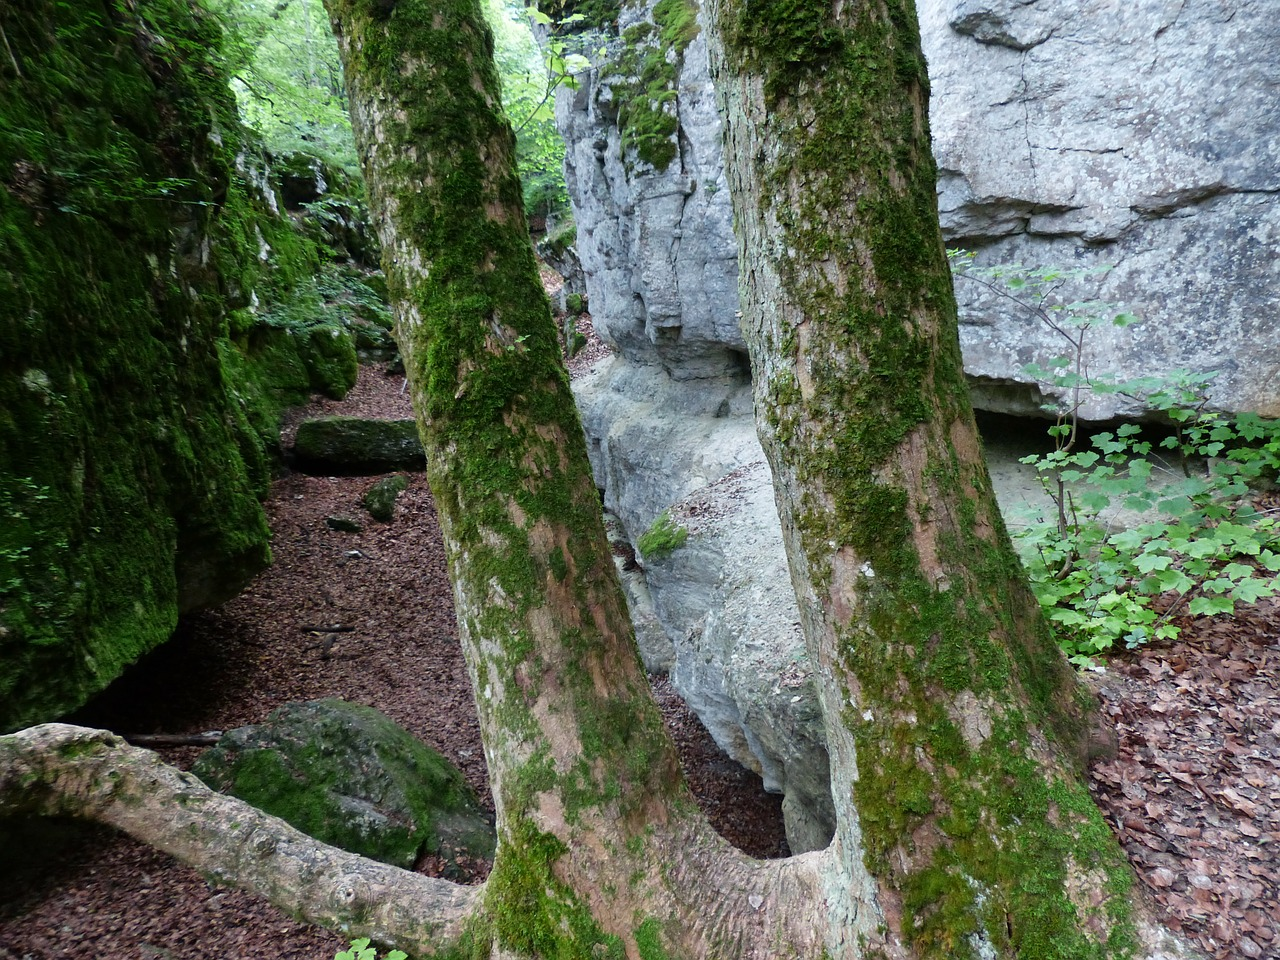 https://pixabay.com/photos/tree-trunks-trees-rock-cleft-rock-167479/